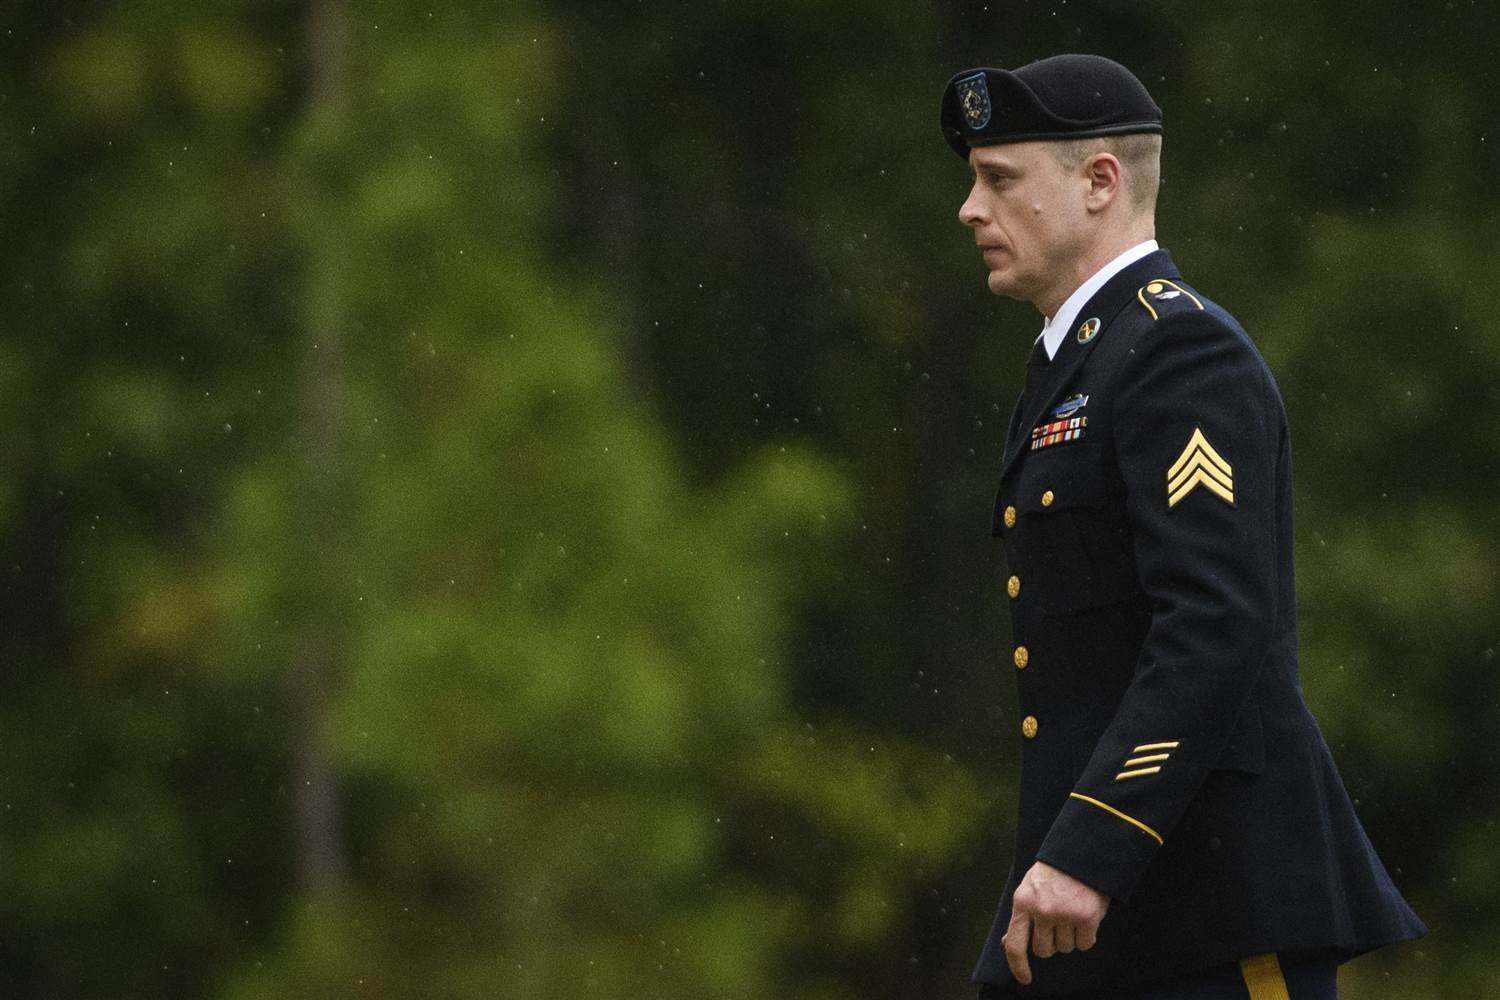 Sgt. Bowe Bergdahl's sentencing hearing postponed until Wednesday